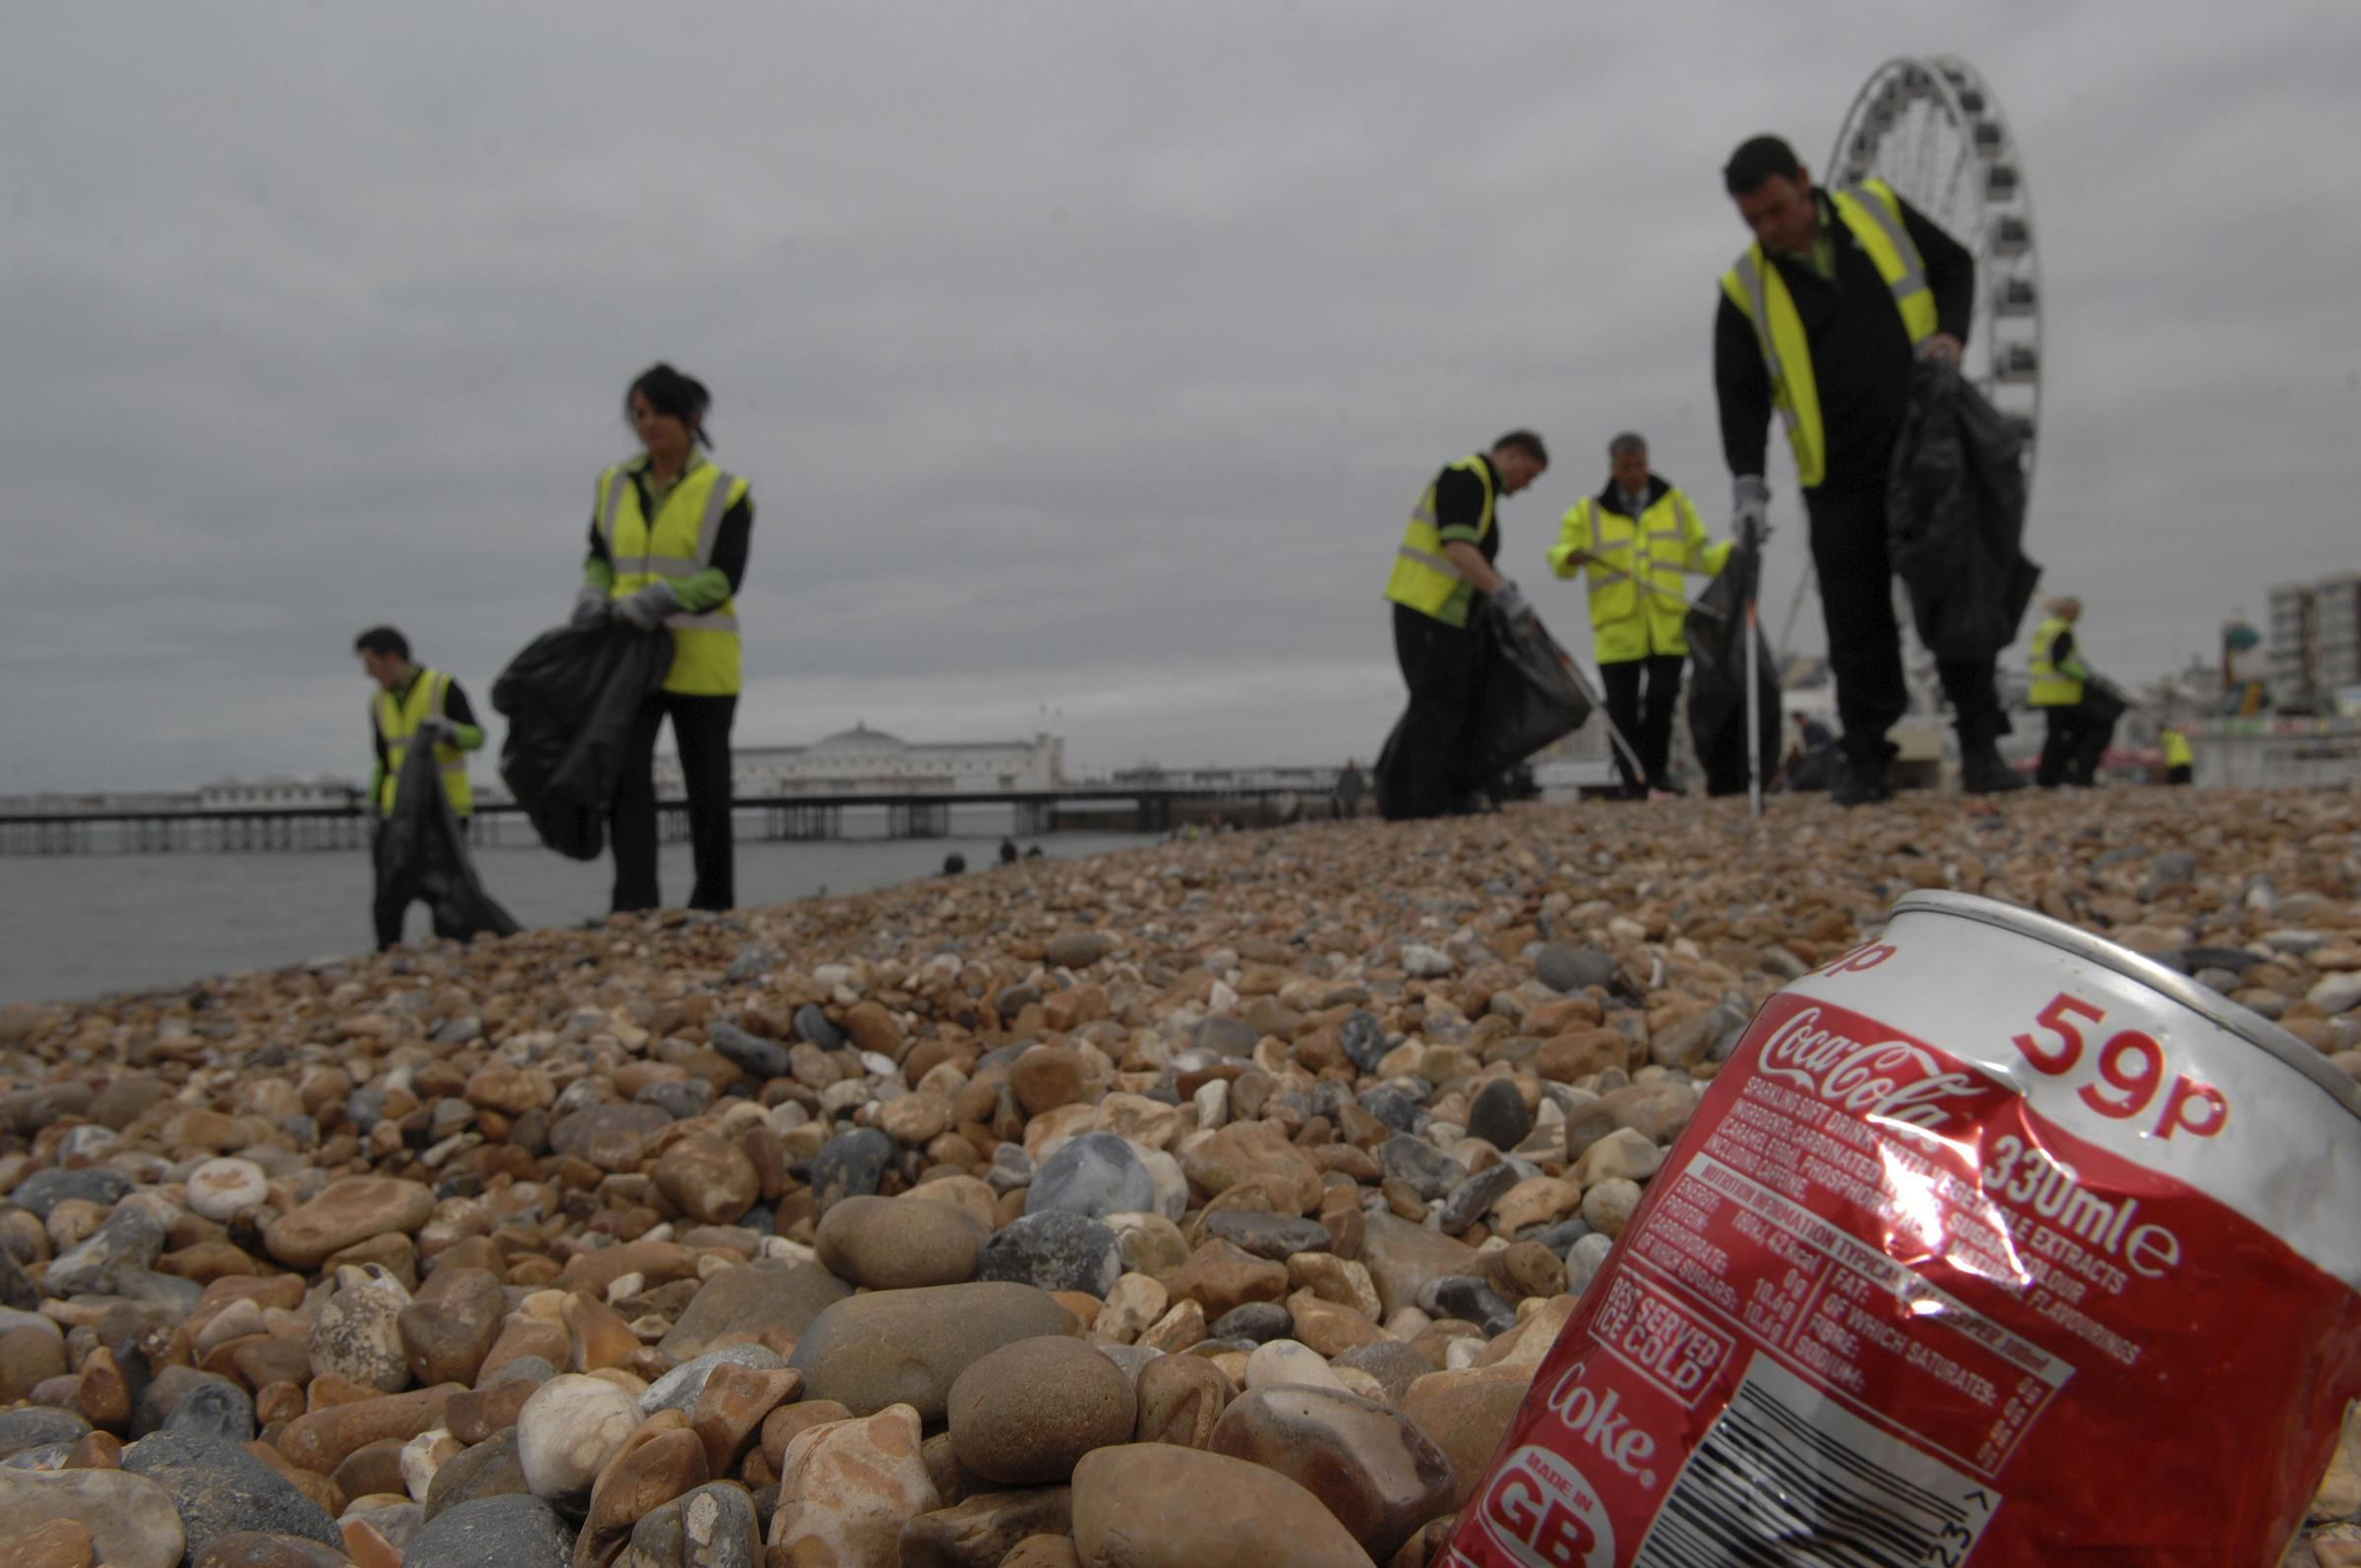 Volunteers and firms join together for clean-up